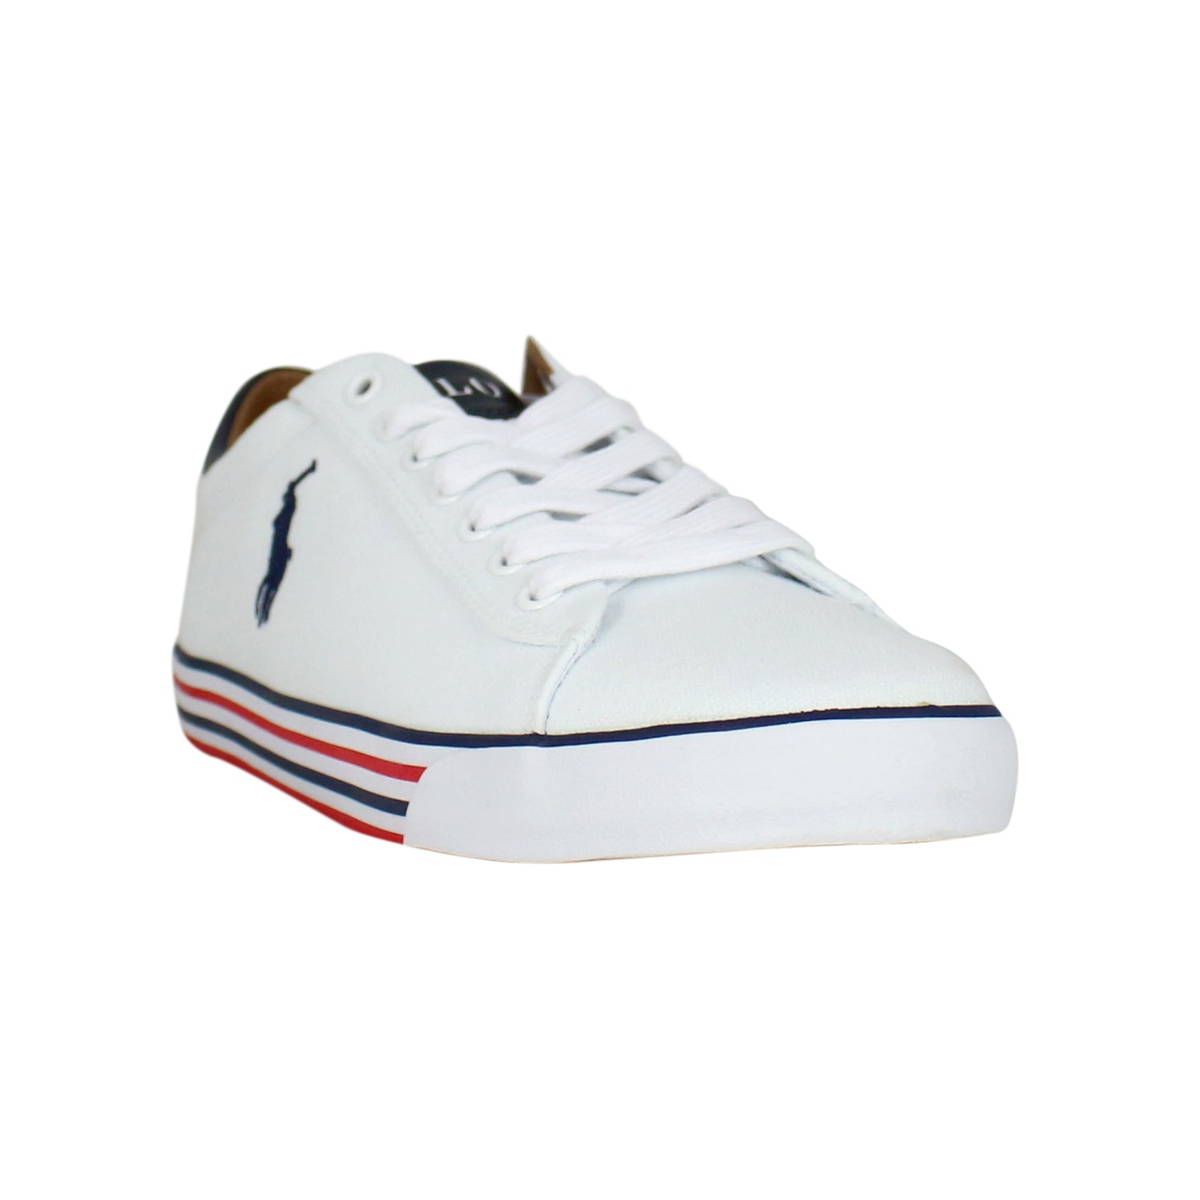 Sneakers Harvey in cotone Bianco Polo Ralph Lauren